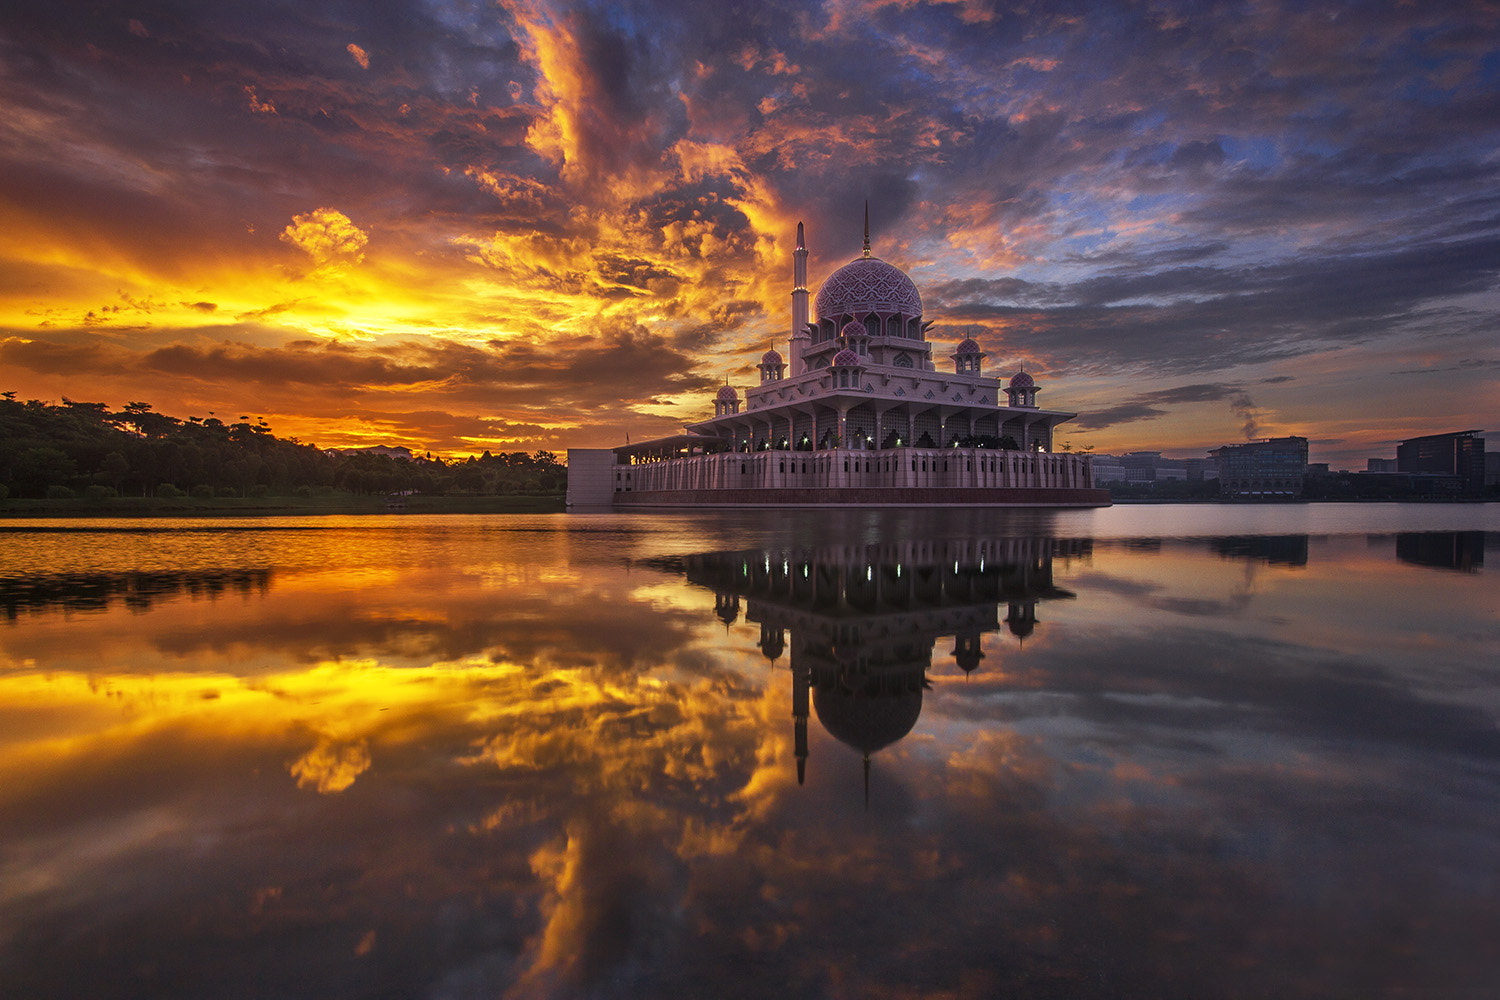 Photograph The Sunrise by farizun amrod | photography on 500px